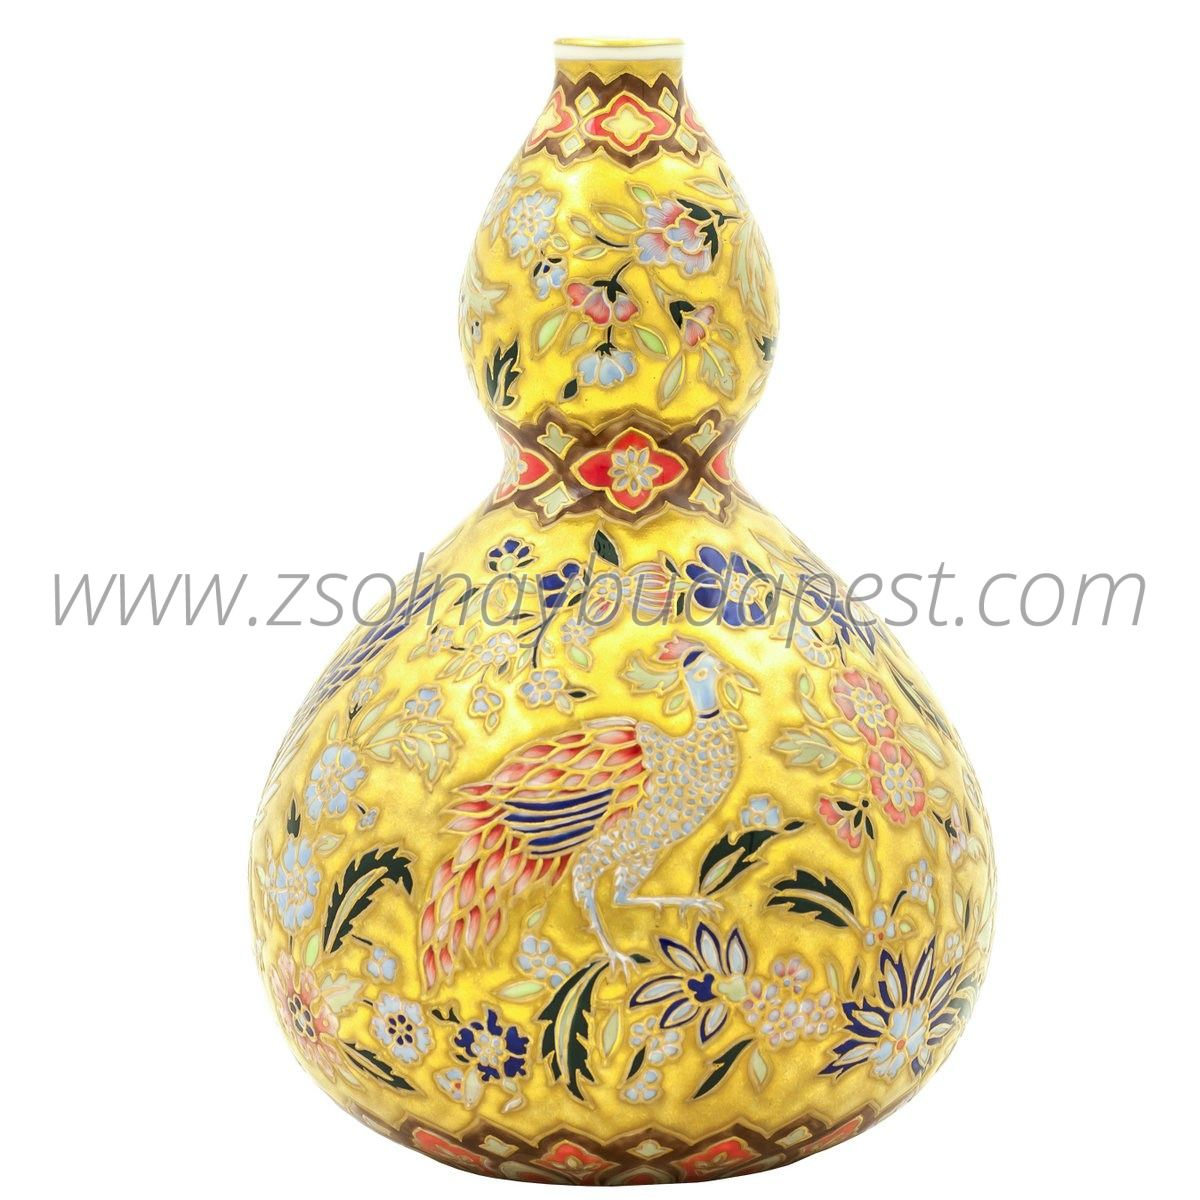 Limited edition Peacock Golden Age Vase 08/50